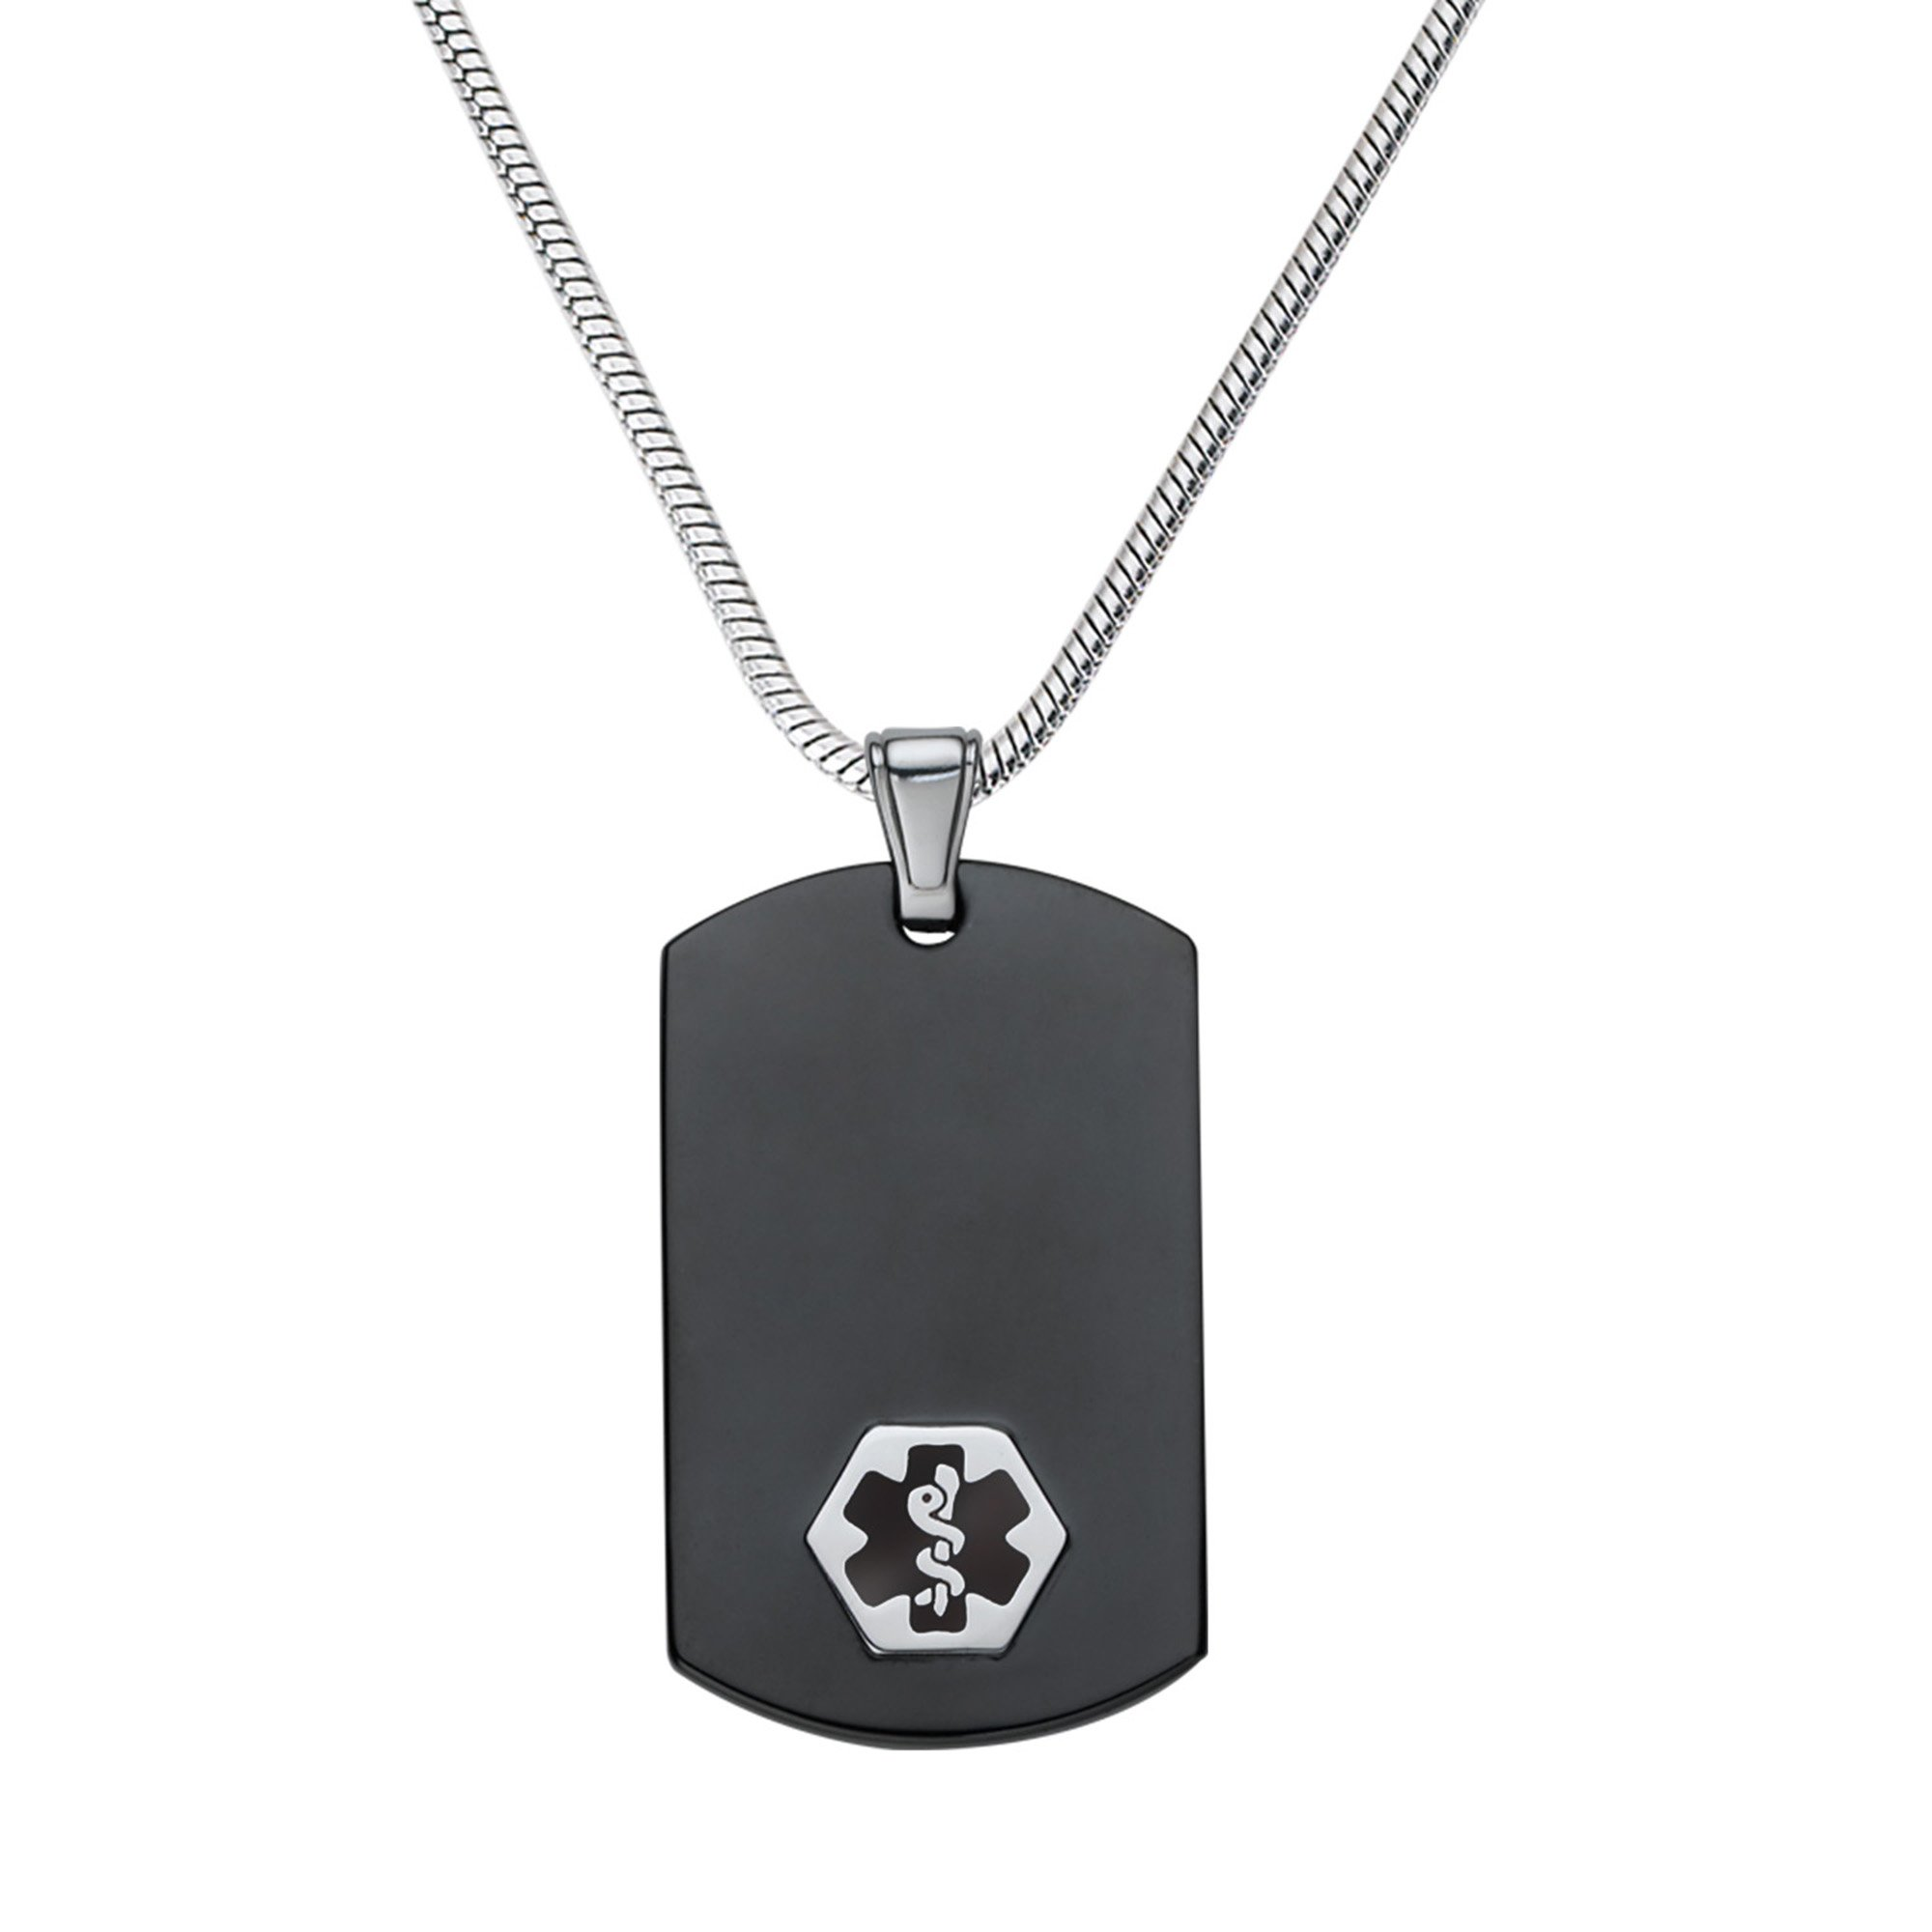 Divoti Custom Engraved Chic Black & Silver 316L Medical Alert Necklace-Dog Tag-24 Stainless Snake Chain-Black